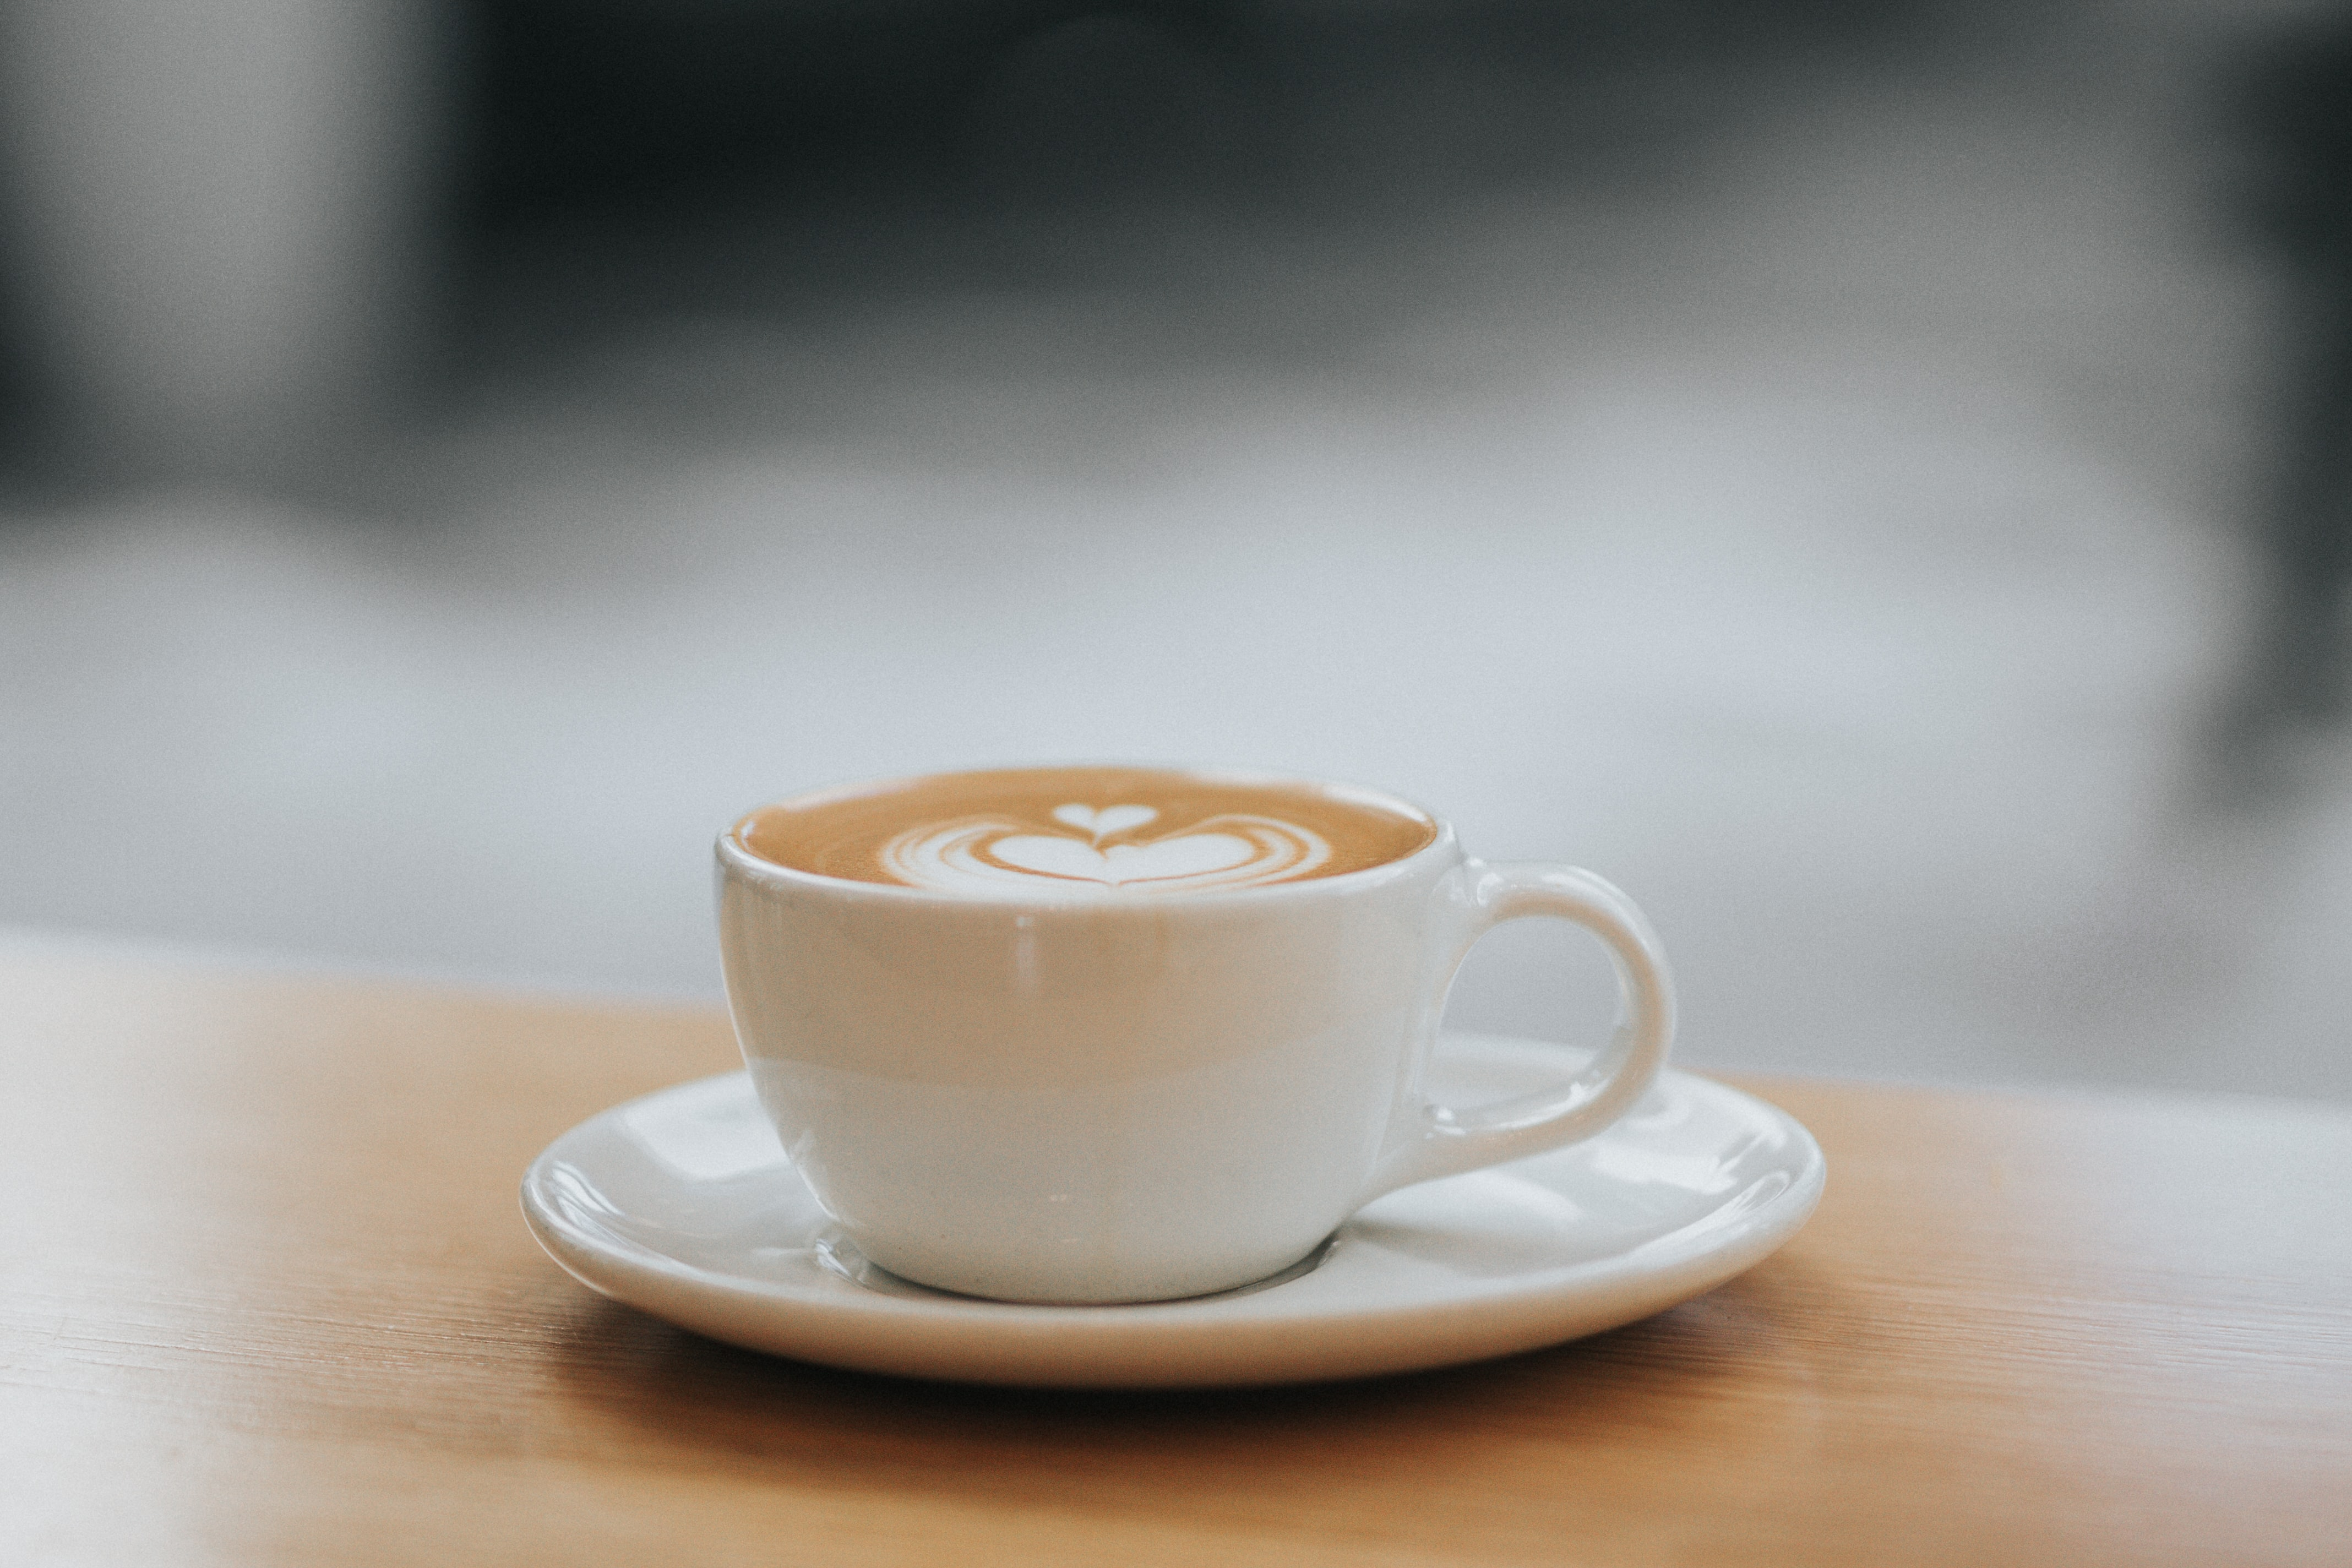 white ceramic teacup filled with coffee latte with saucer on the table photography